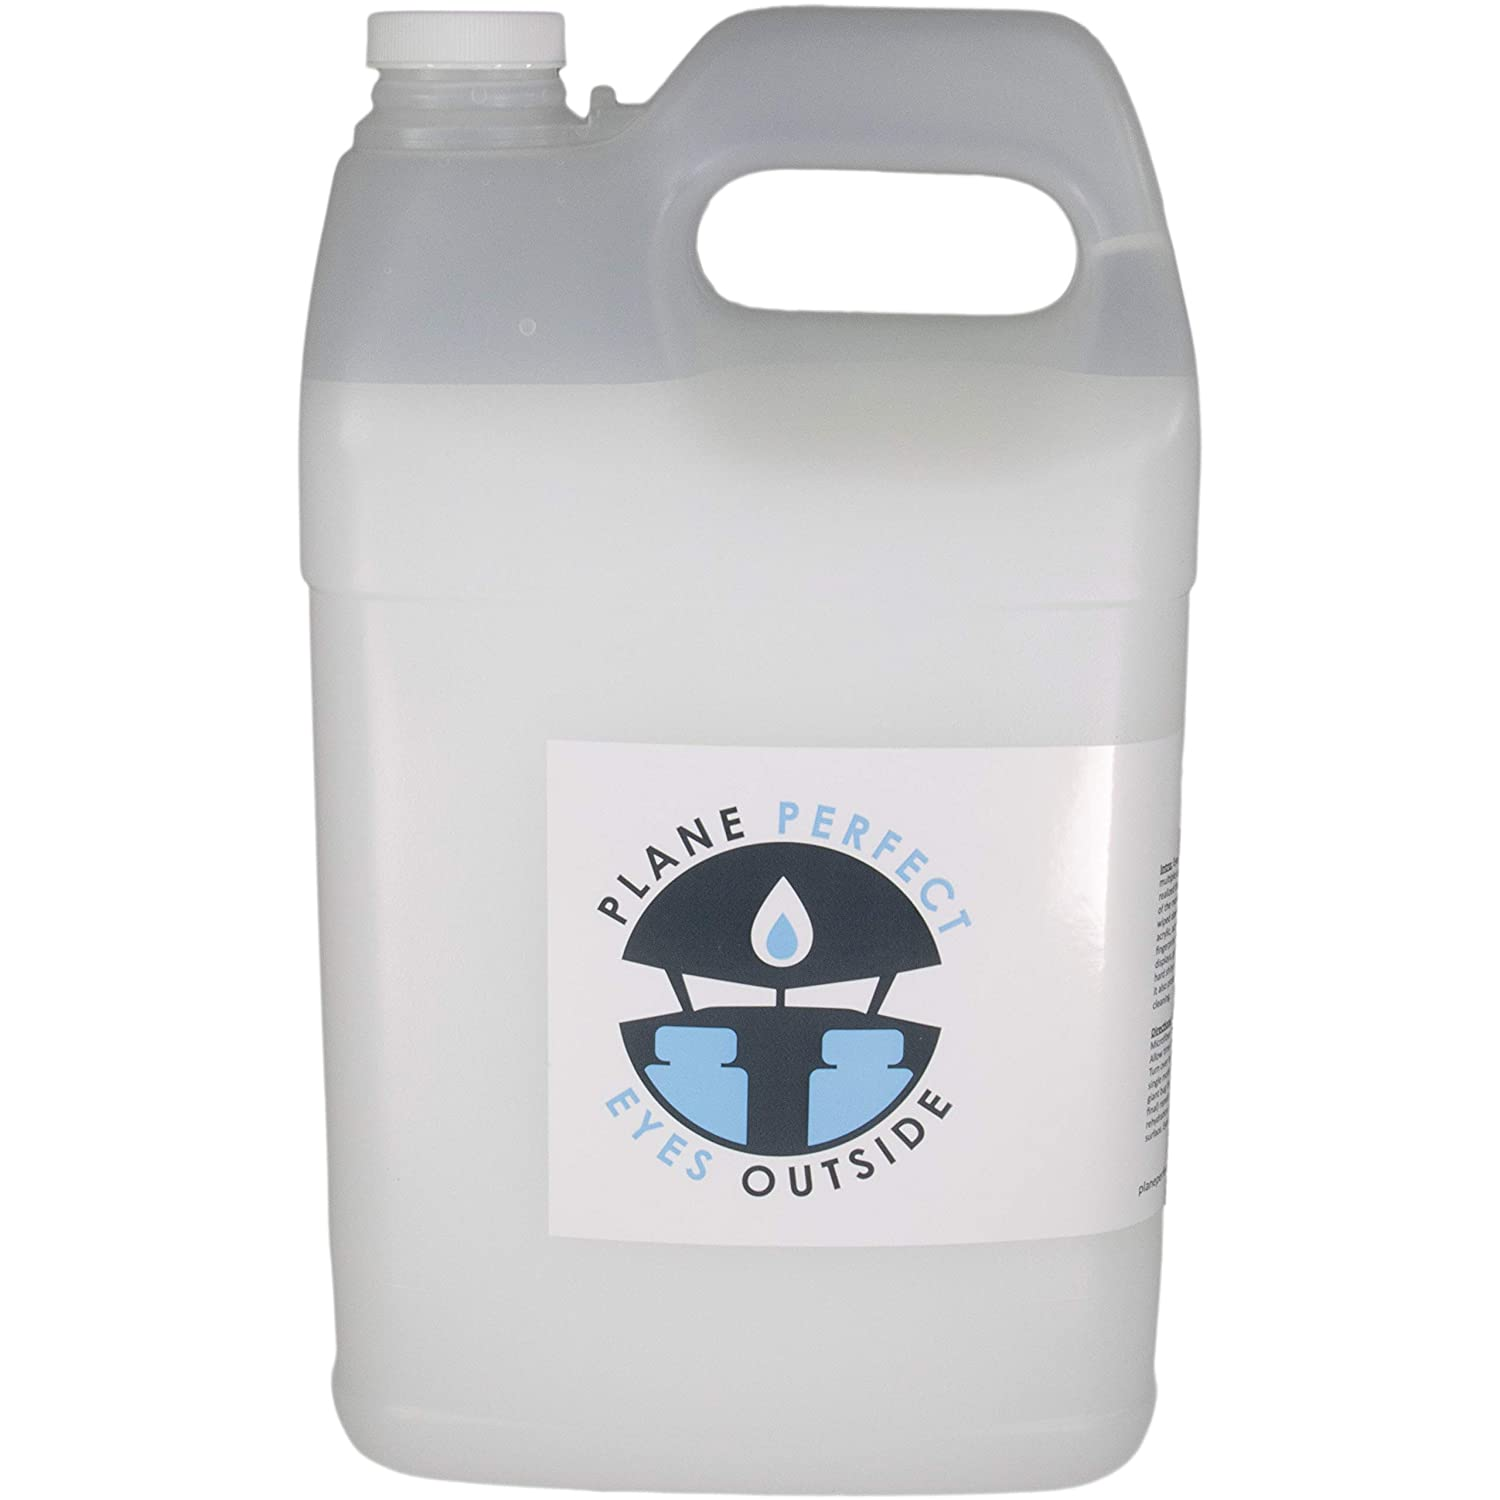 Plane Perfect Eyes Outside - Airplane Windshield Cleaner and Polish (Gallon Refill)